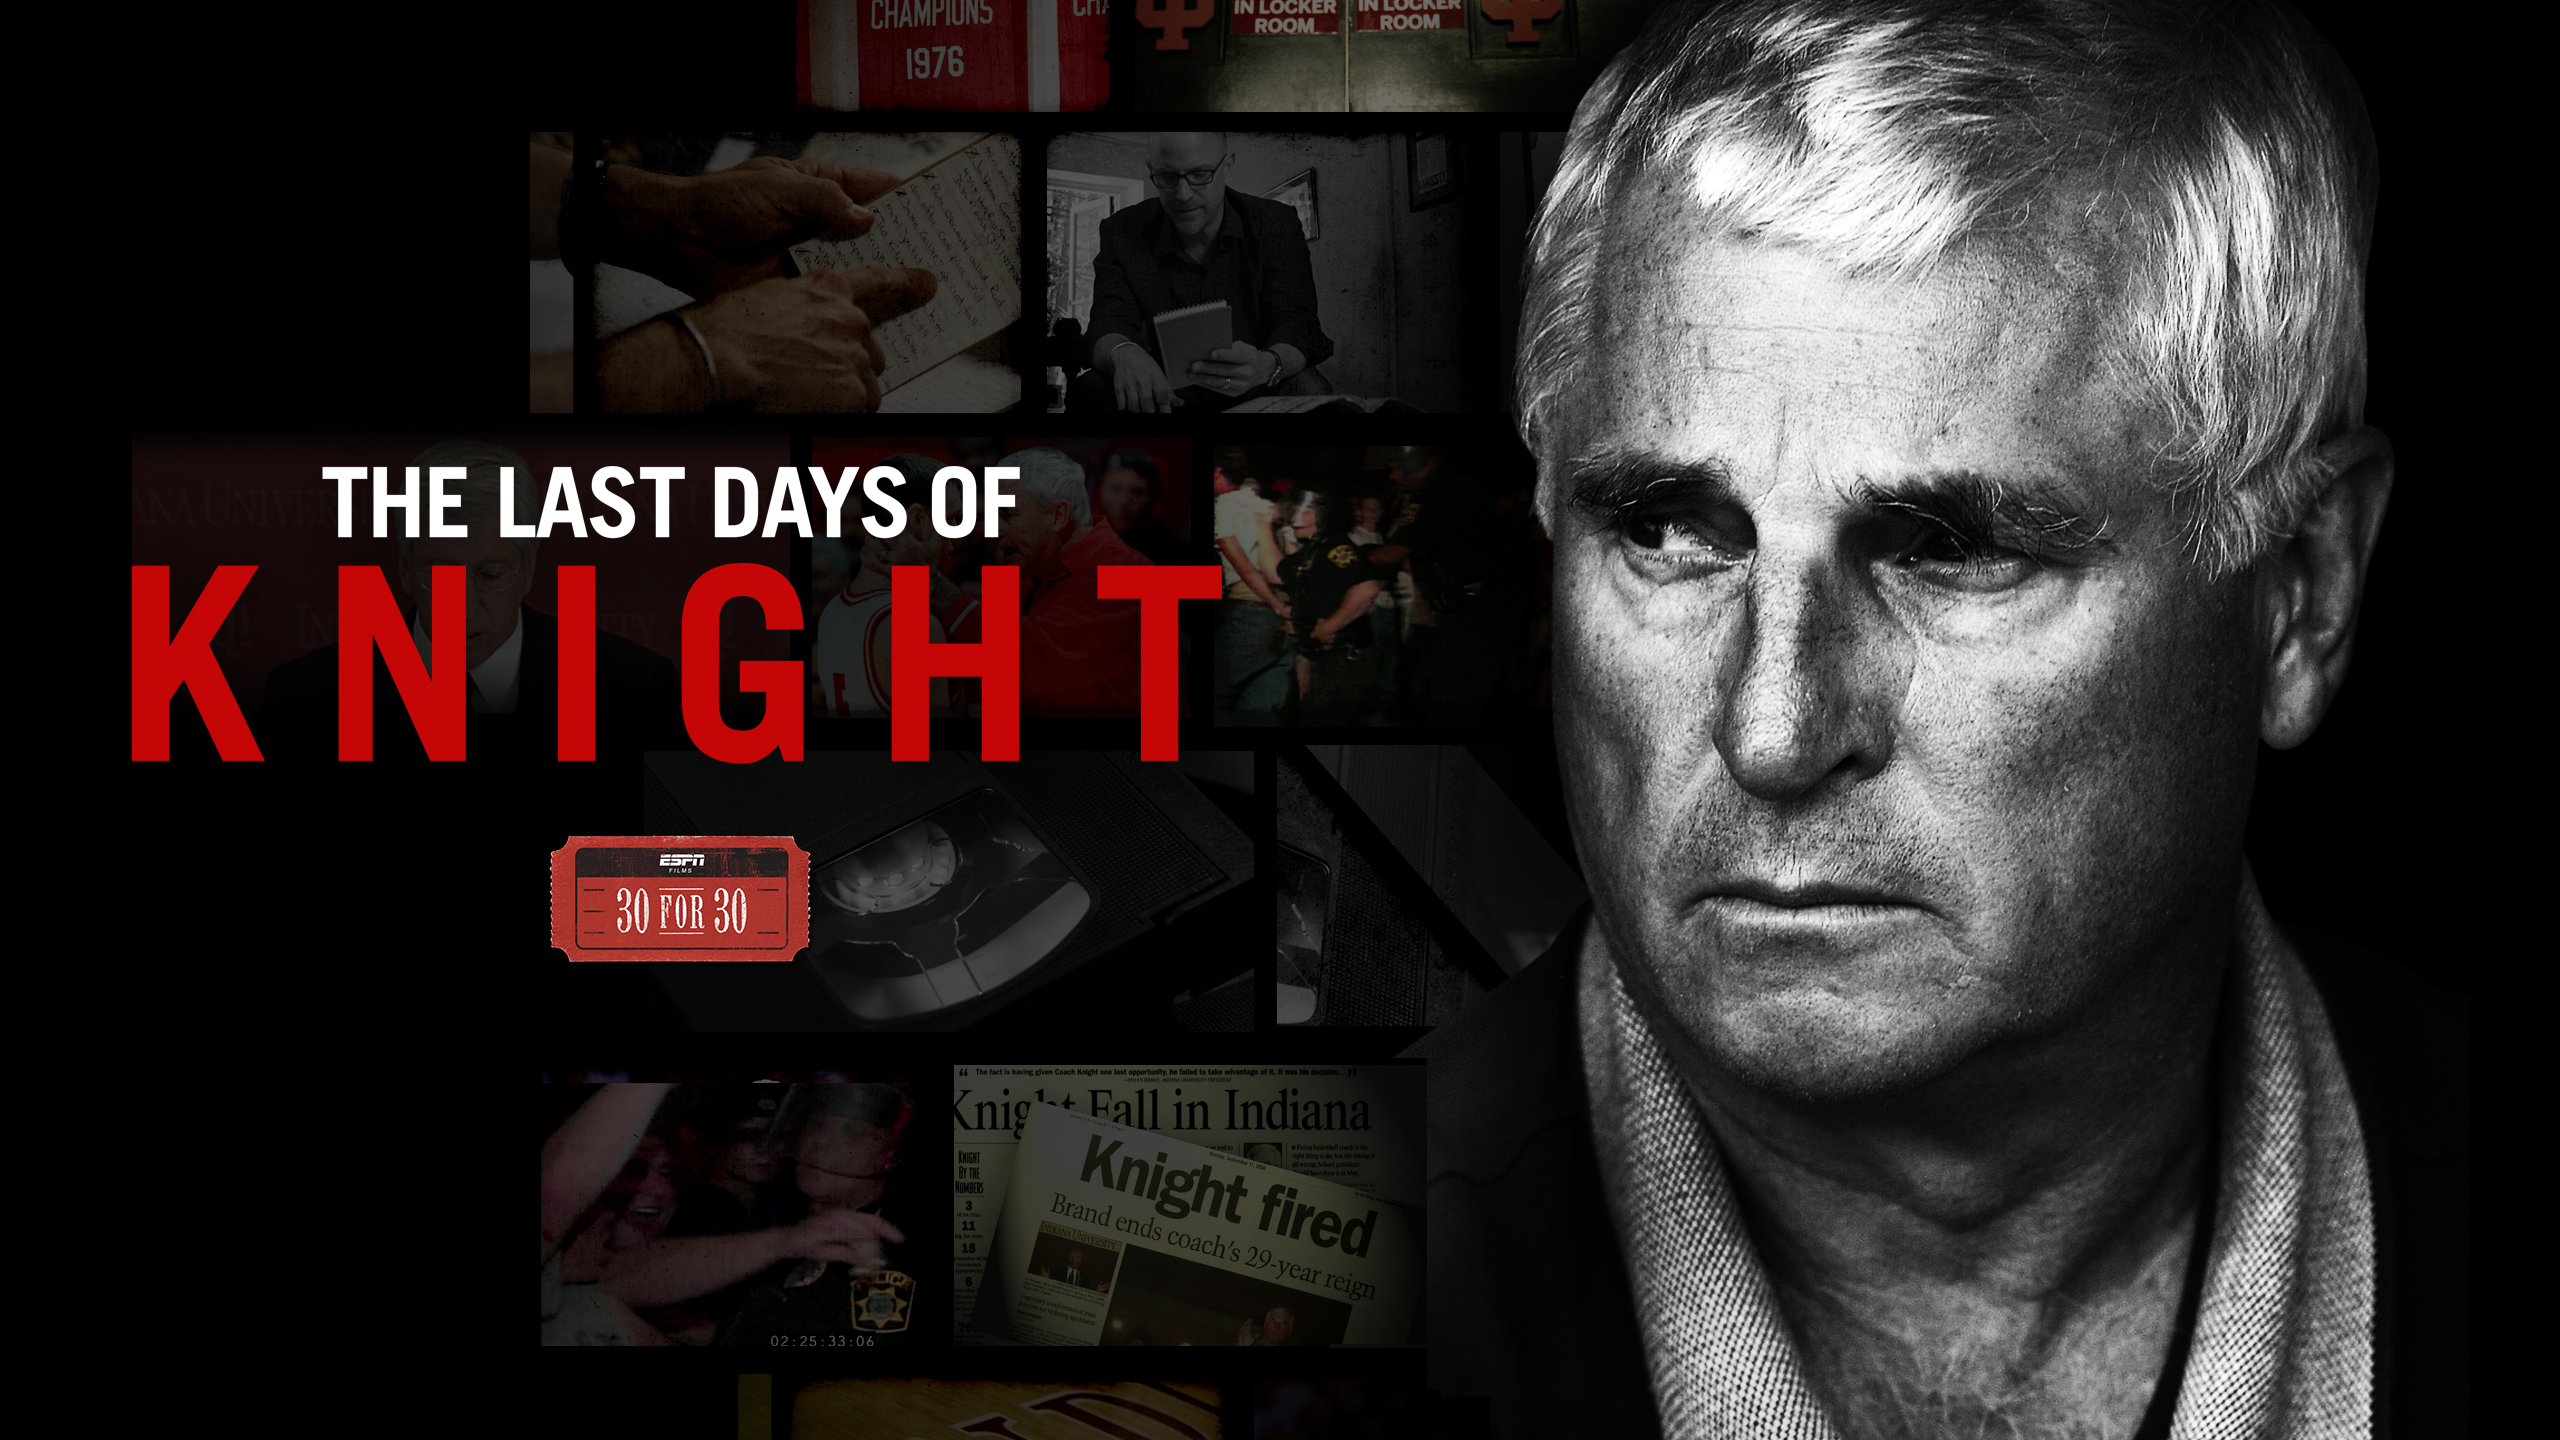 30 for 30: The Last Days of Knight